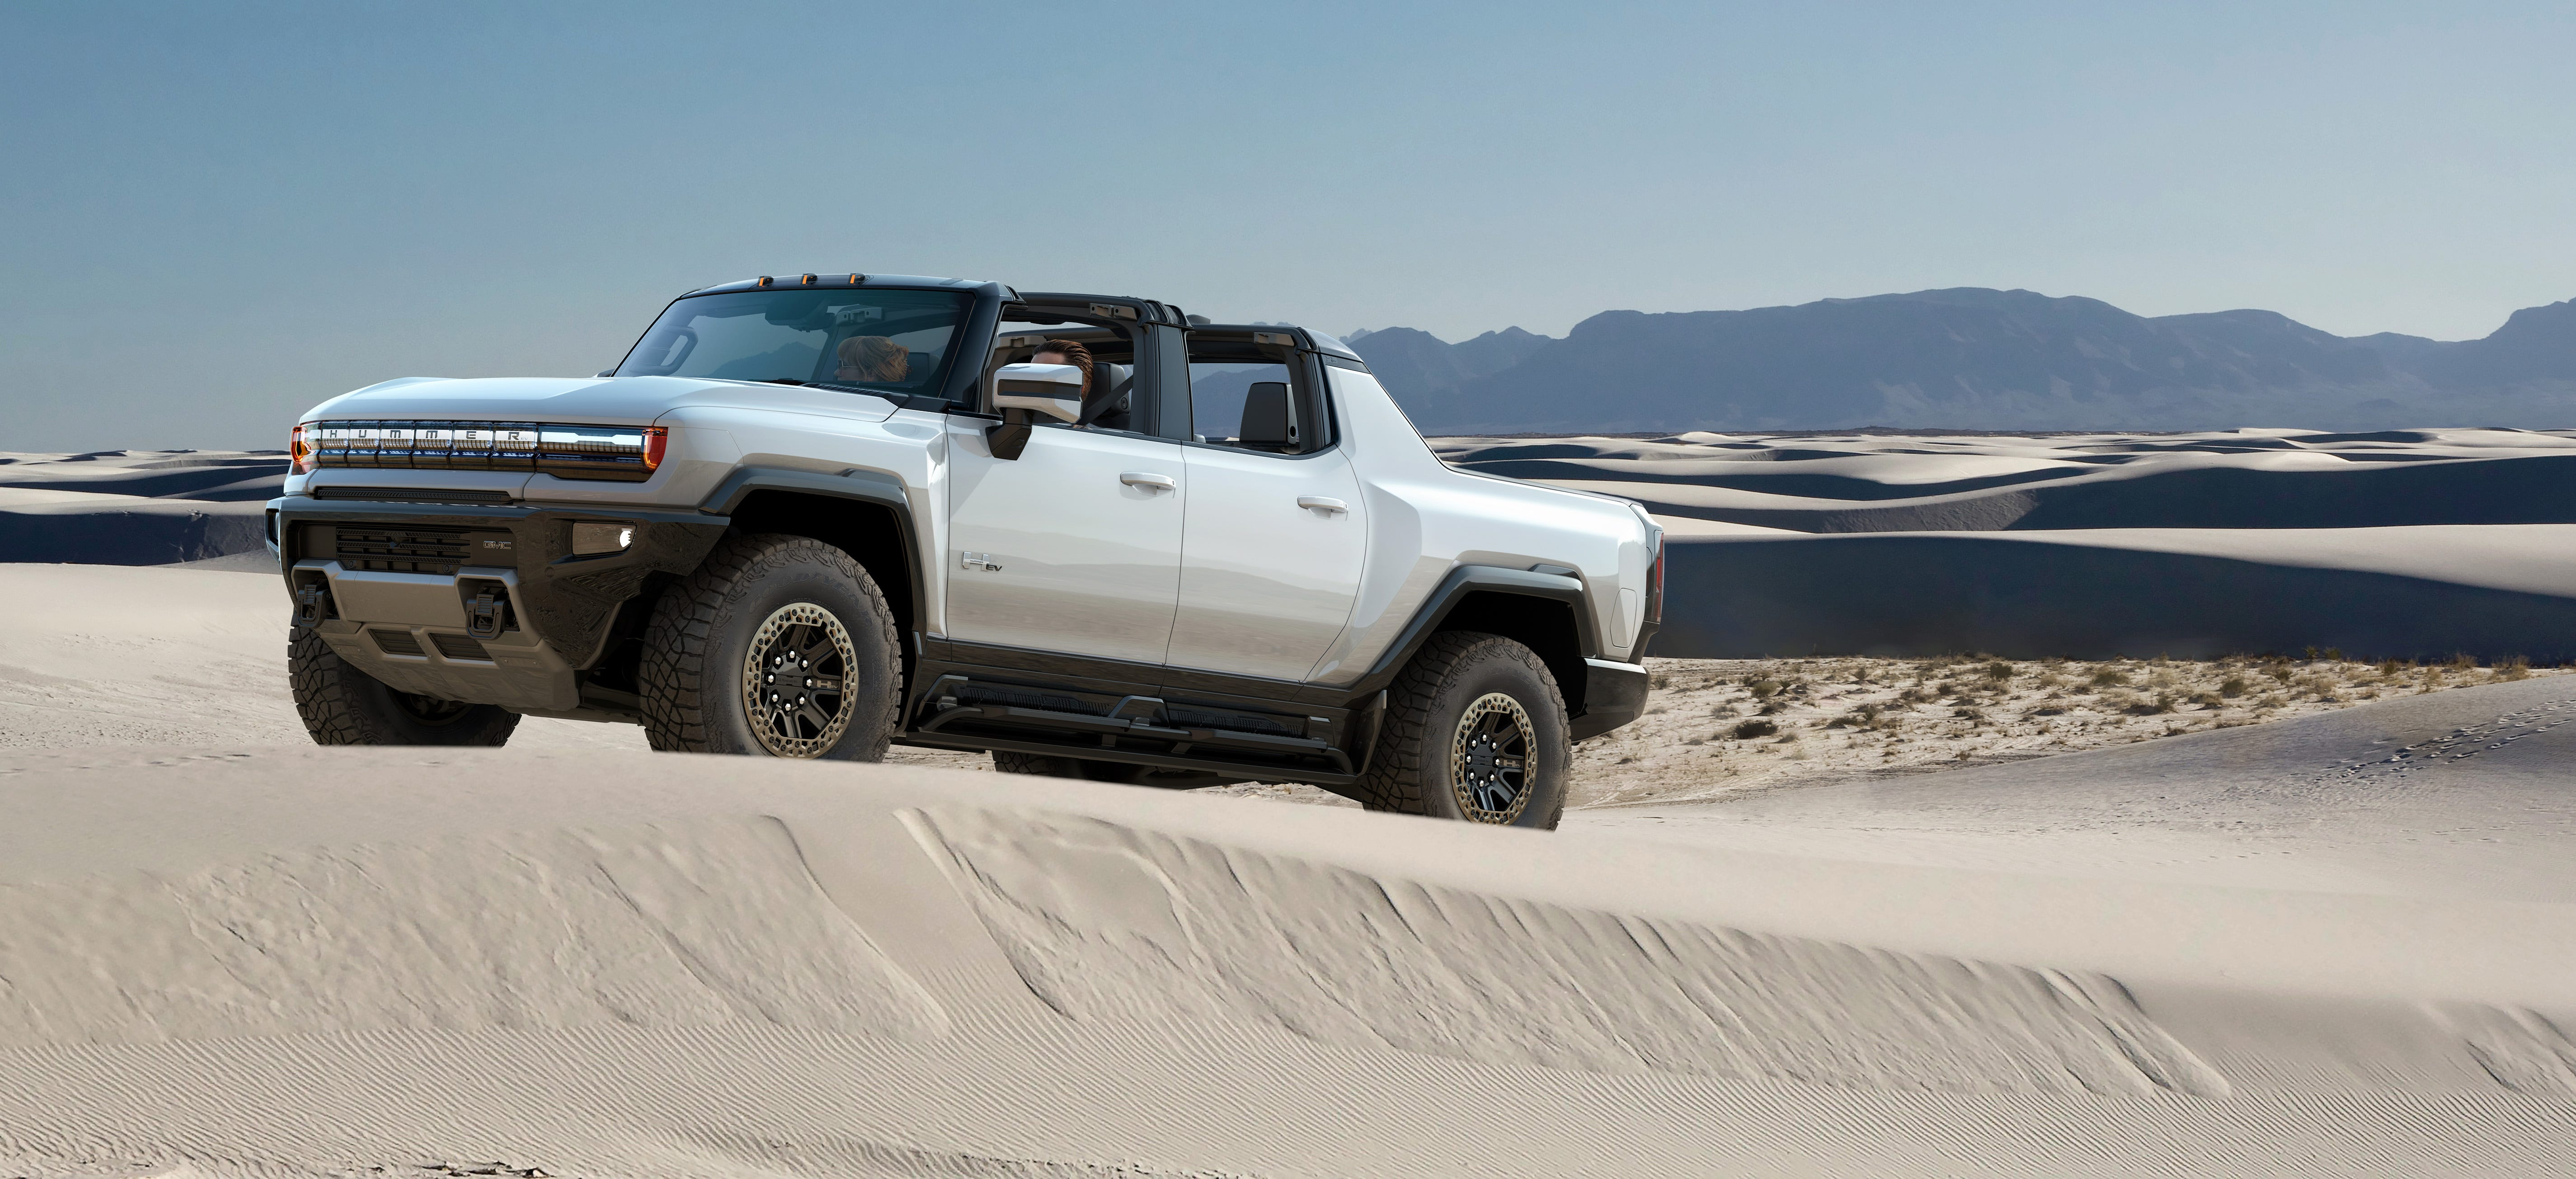 WTF, plus 3 other reasons the 2022 GMC Hummer EV pickup will be a hit